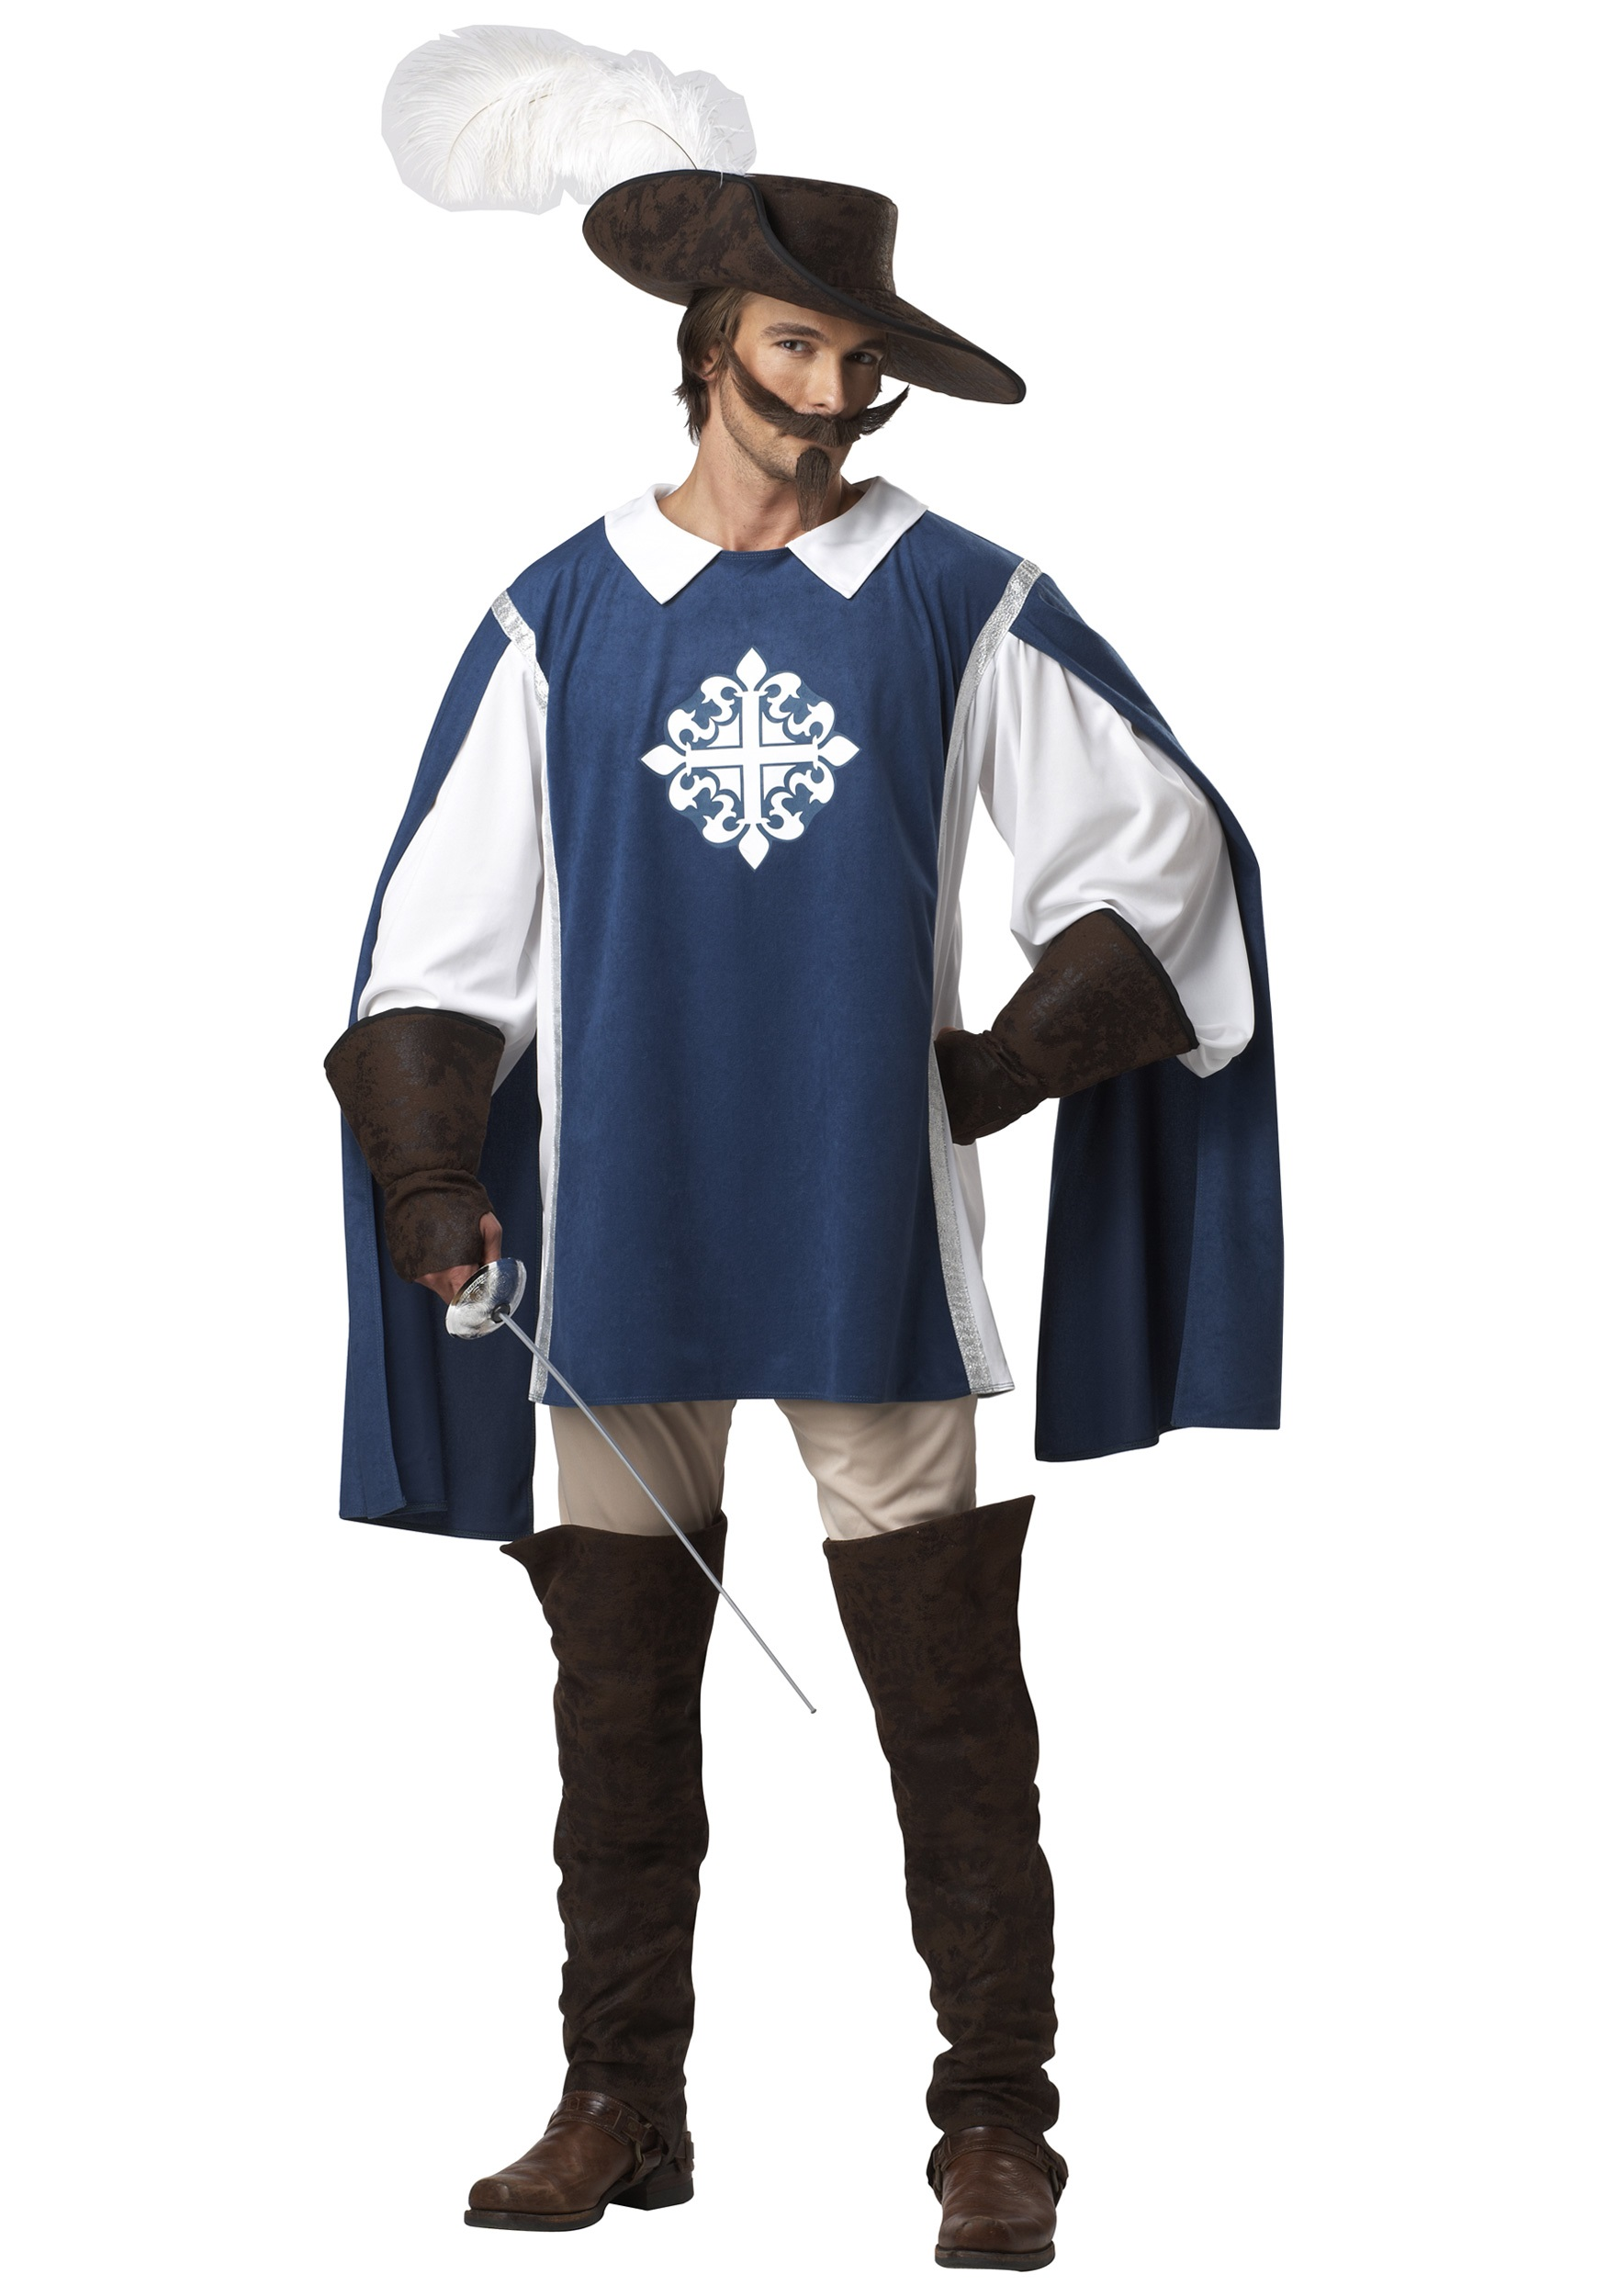 INOpets.com Anything for Pets Parents & Their Pets Brave Musketeer Fancy Dress Costume